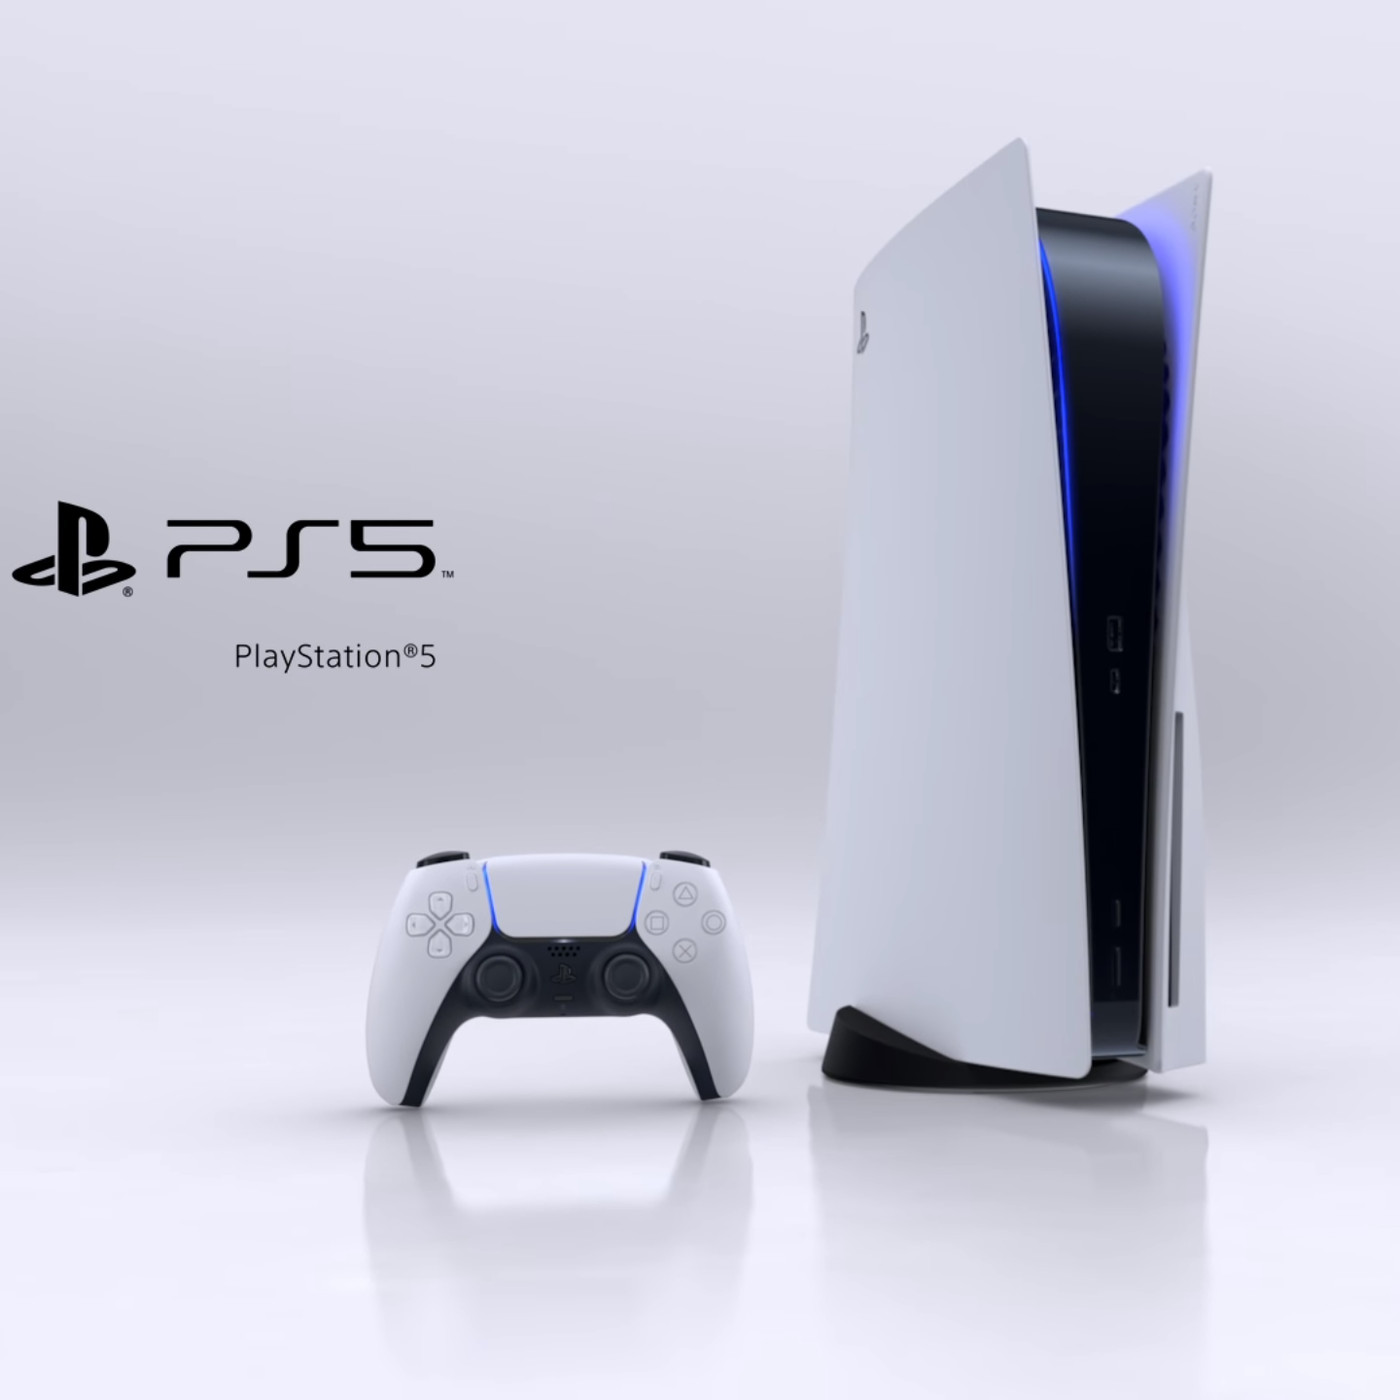 The PlayStation 5 is Coming Out Soon – Business Or Pleasure